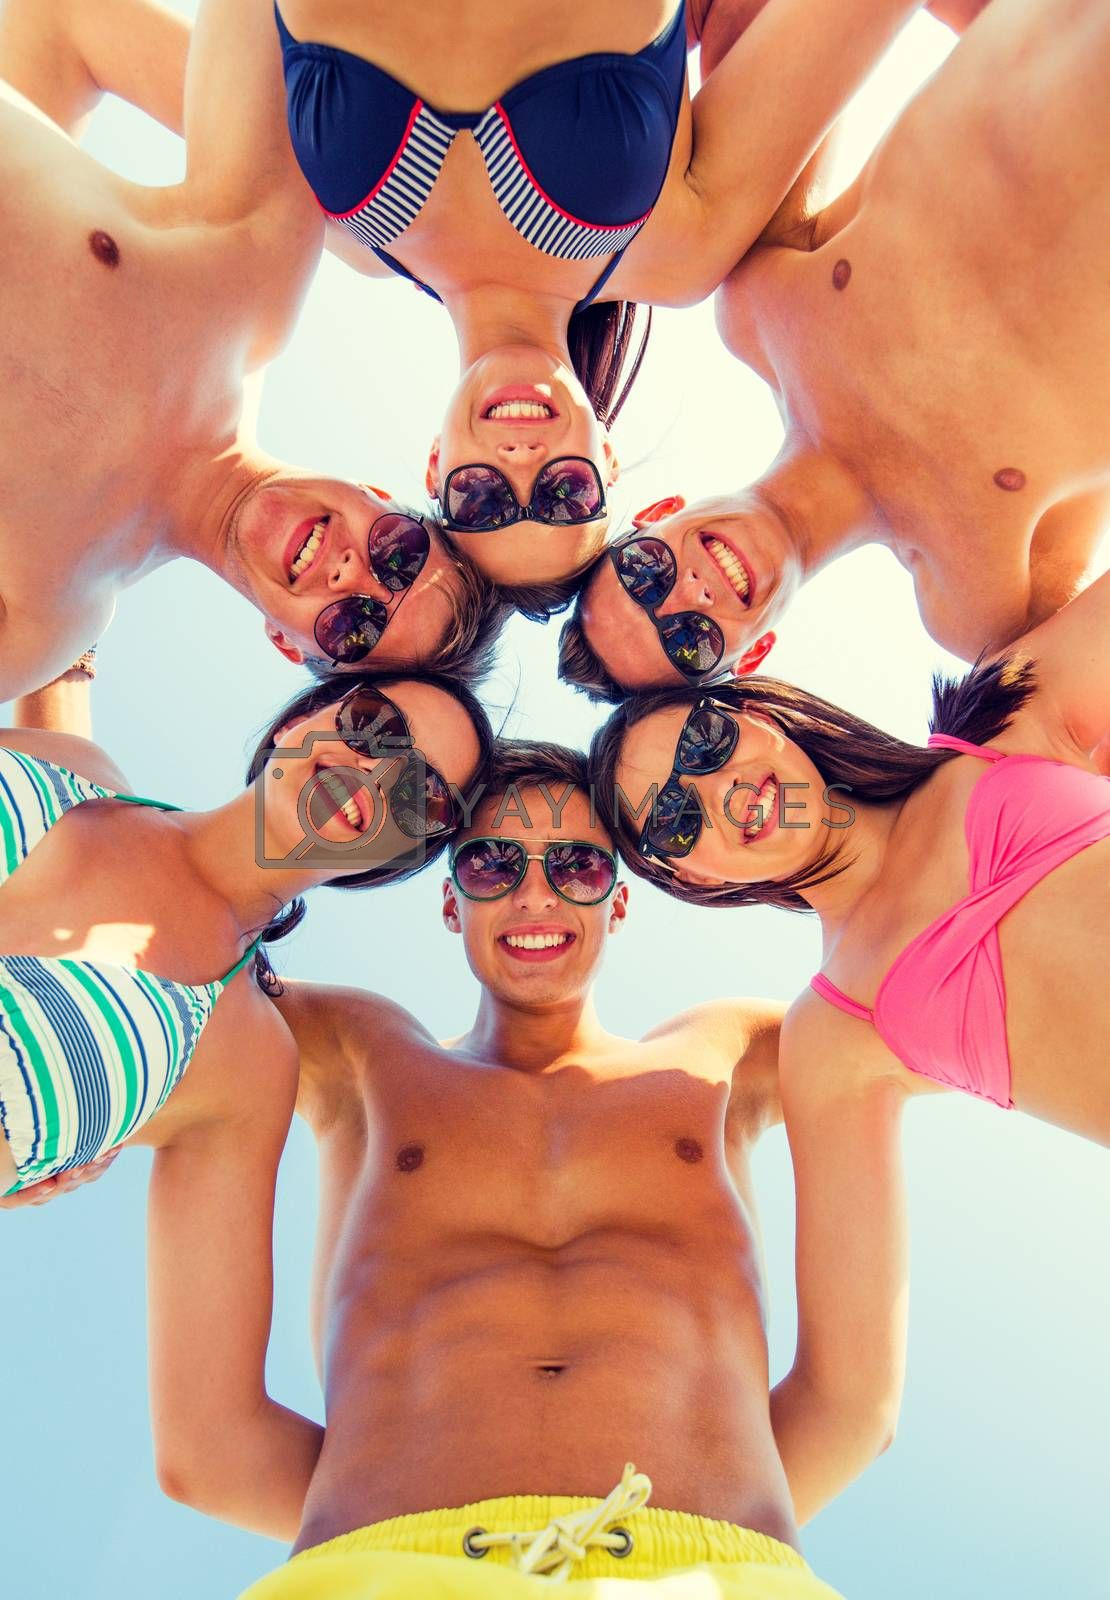 friendship, happiness, summer vacation, holidays and people concept - group of smiling friends wearing swimwear standing in circle over blue sky